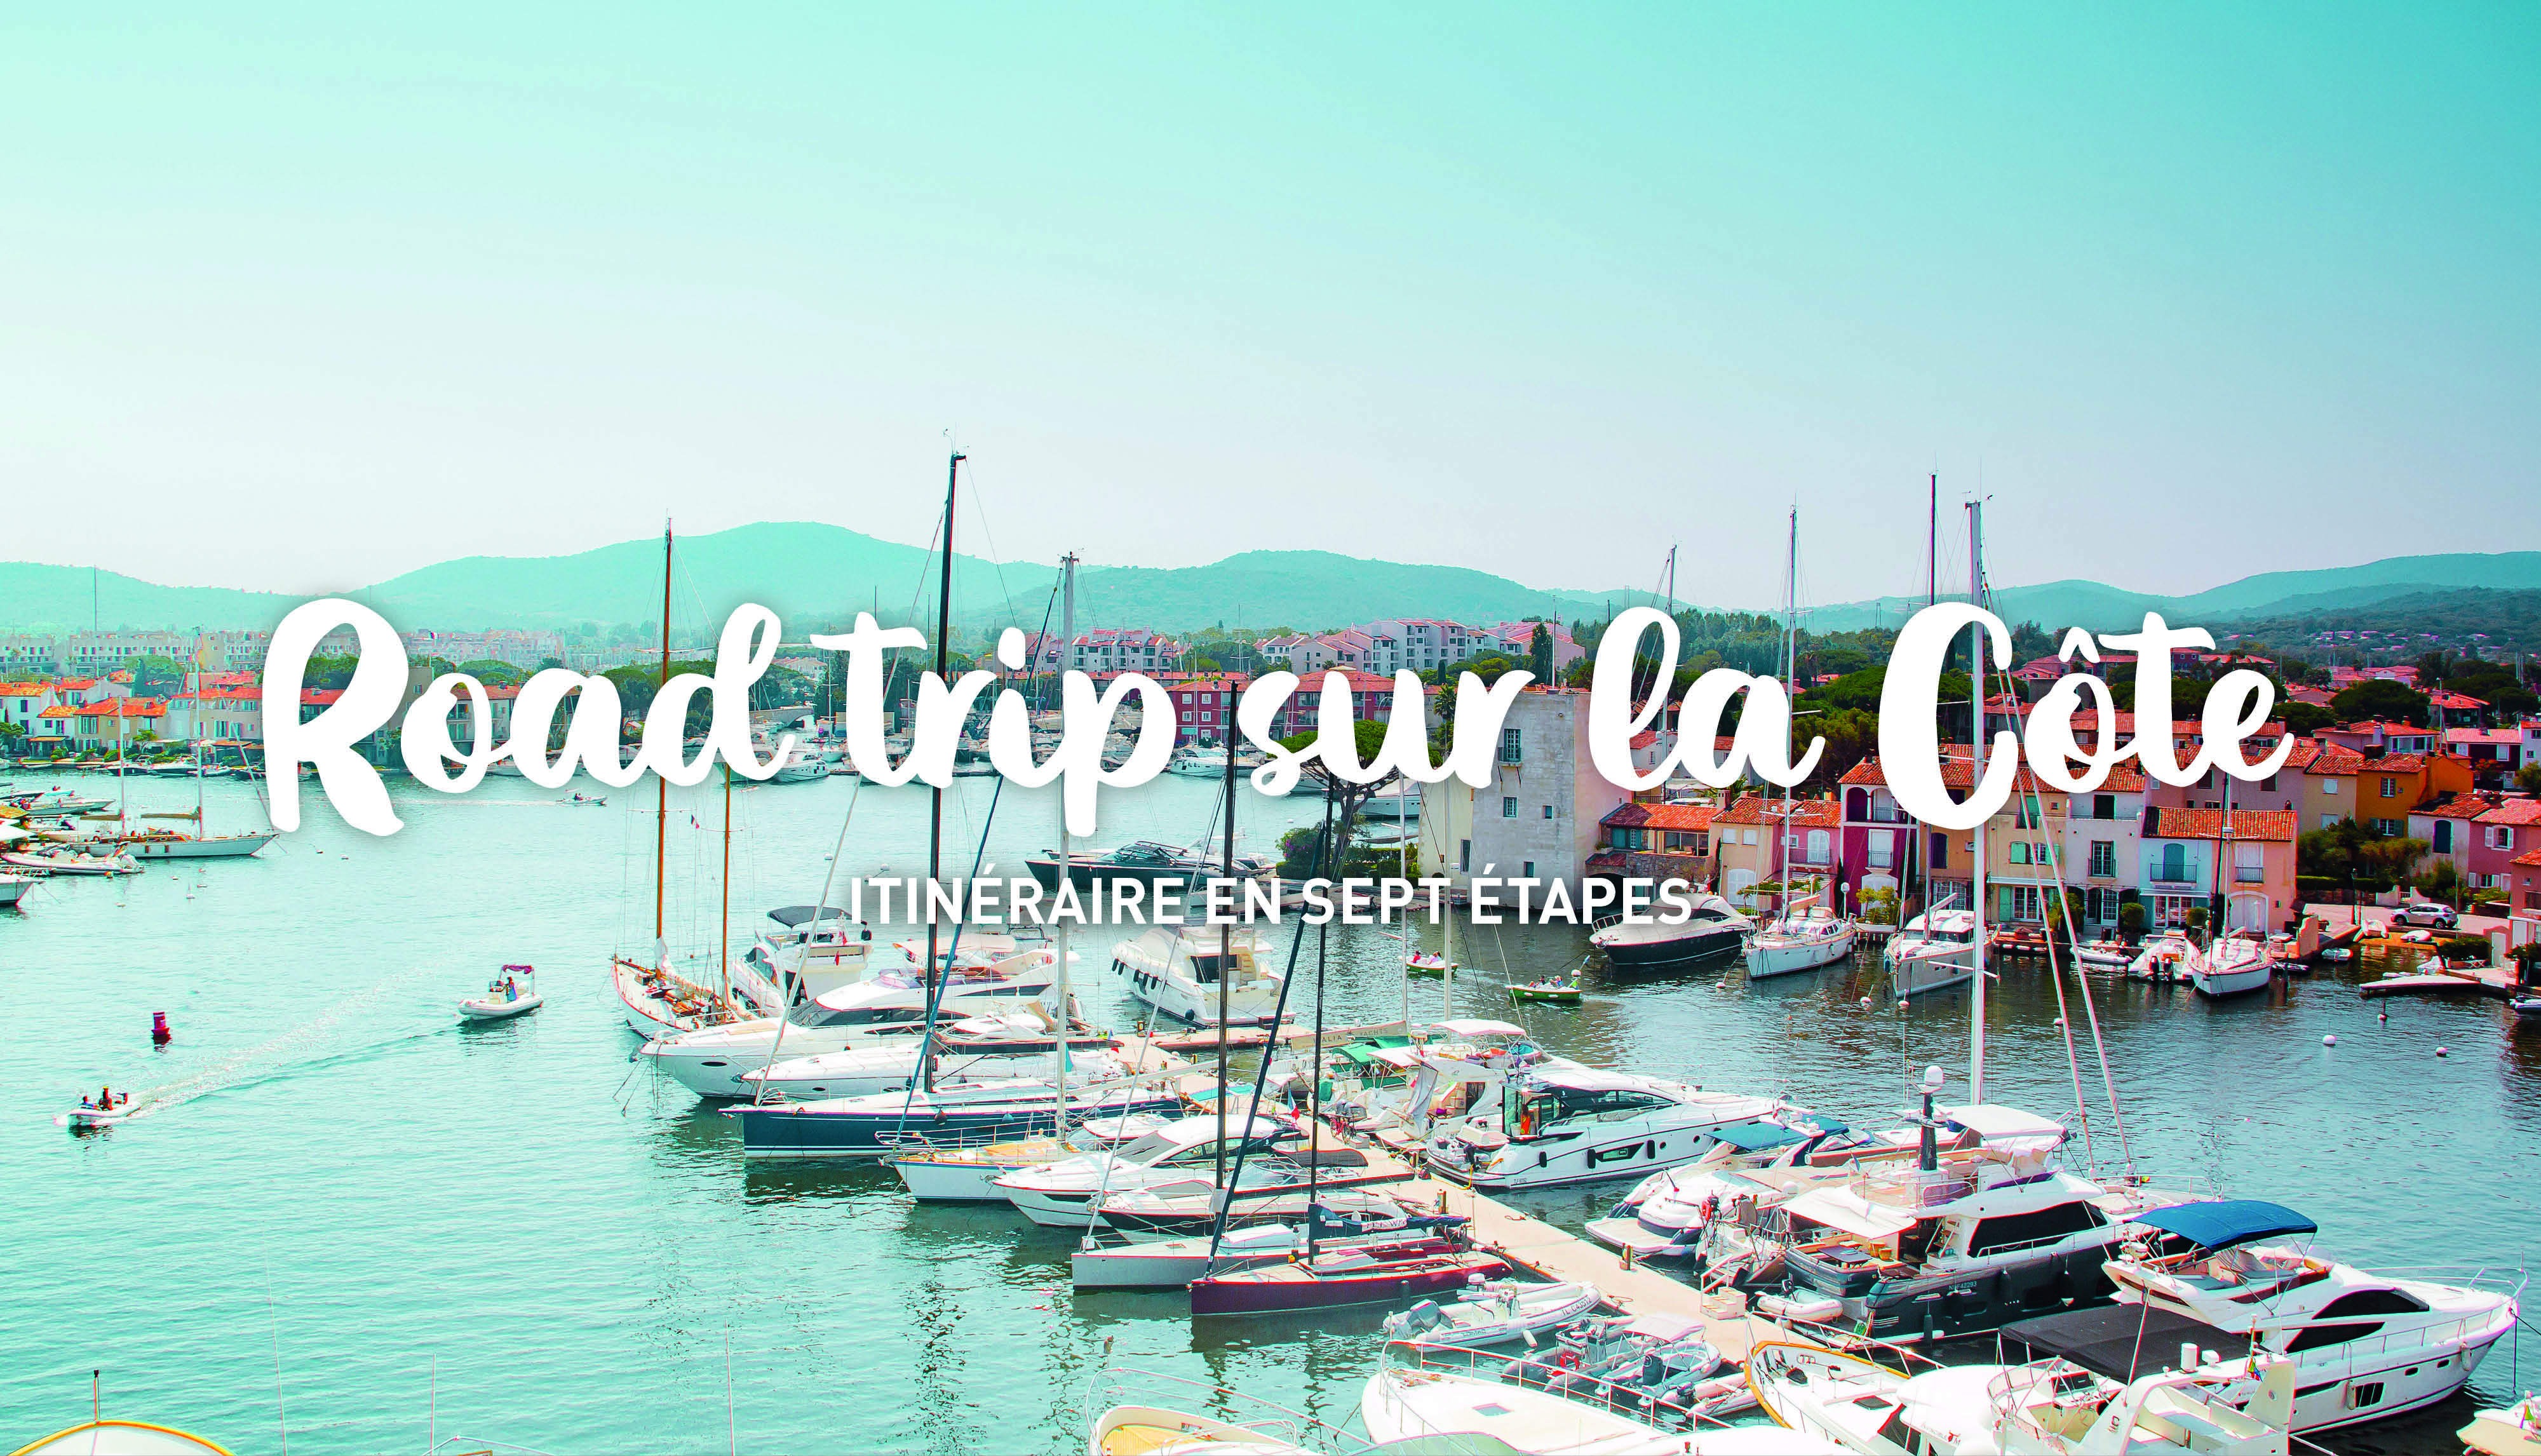 Road trip on the French Riviera: from Marseille to Menton